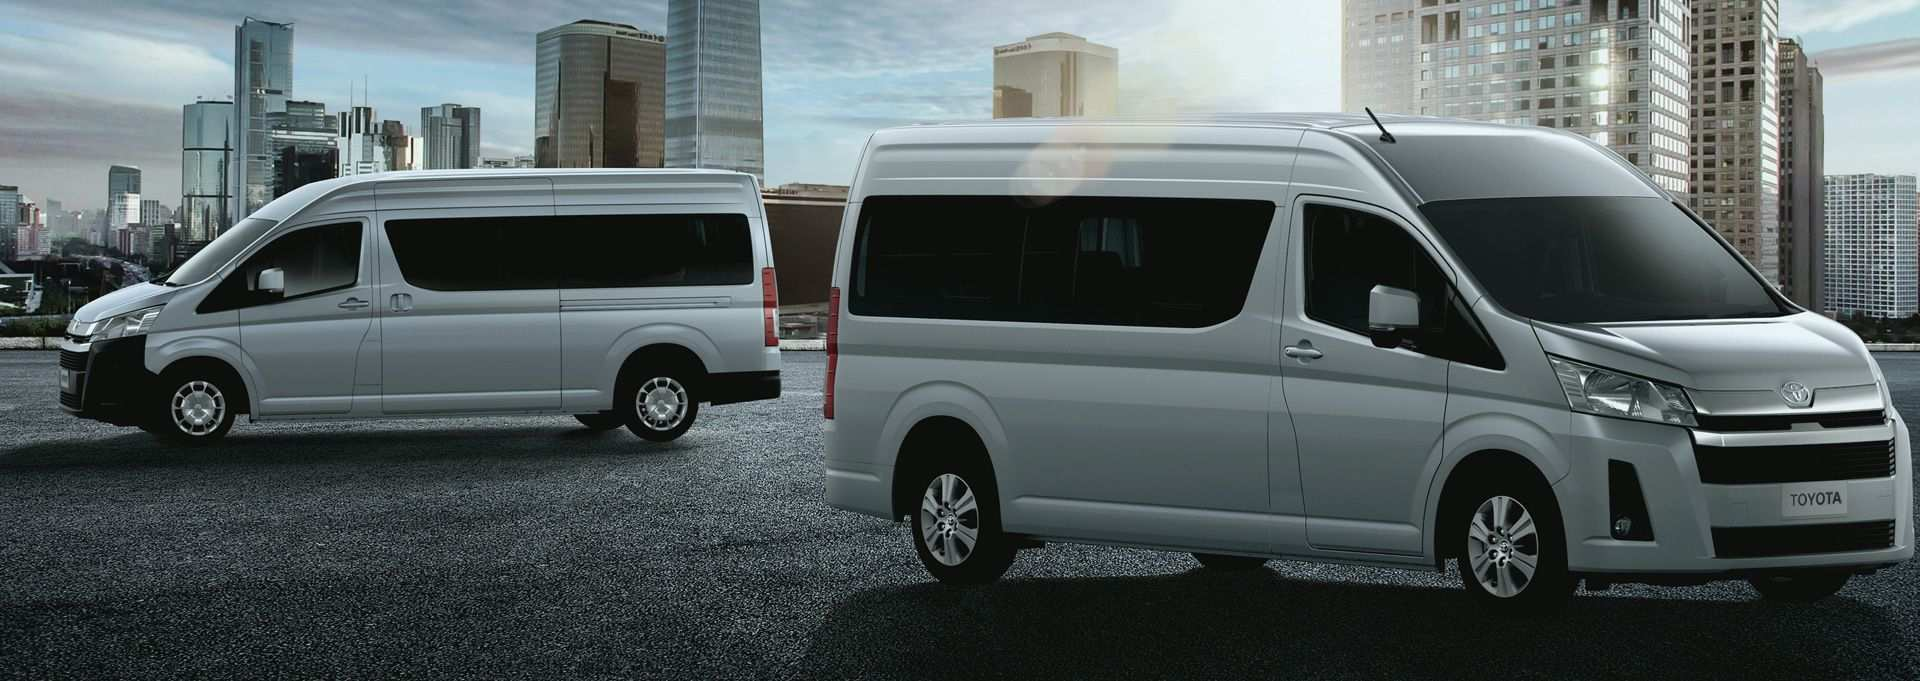 91 The Best Toyota Hiace 2019 Redesign And Concept